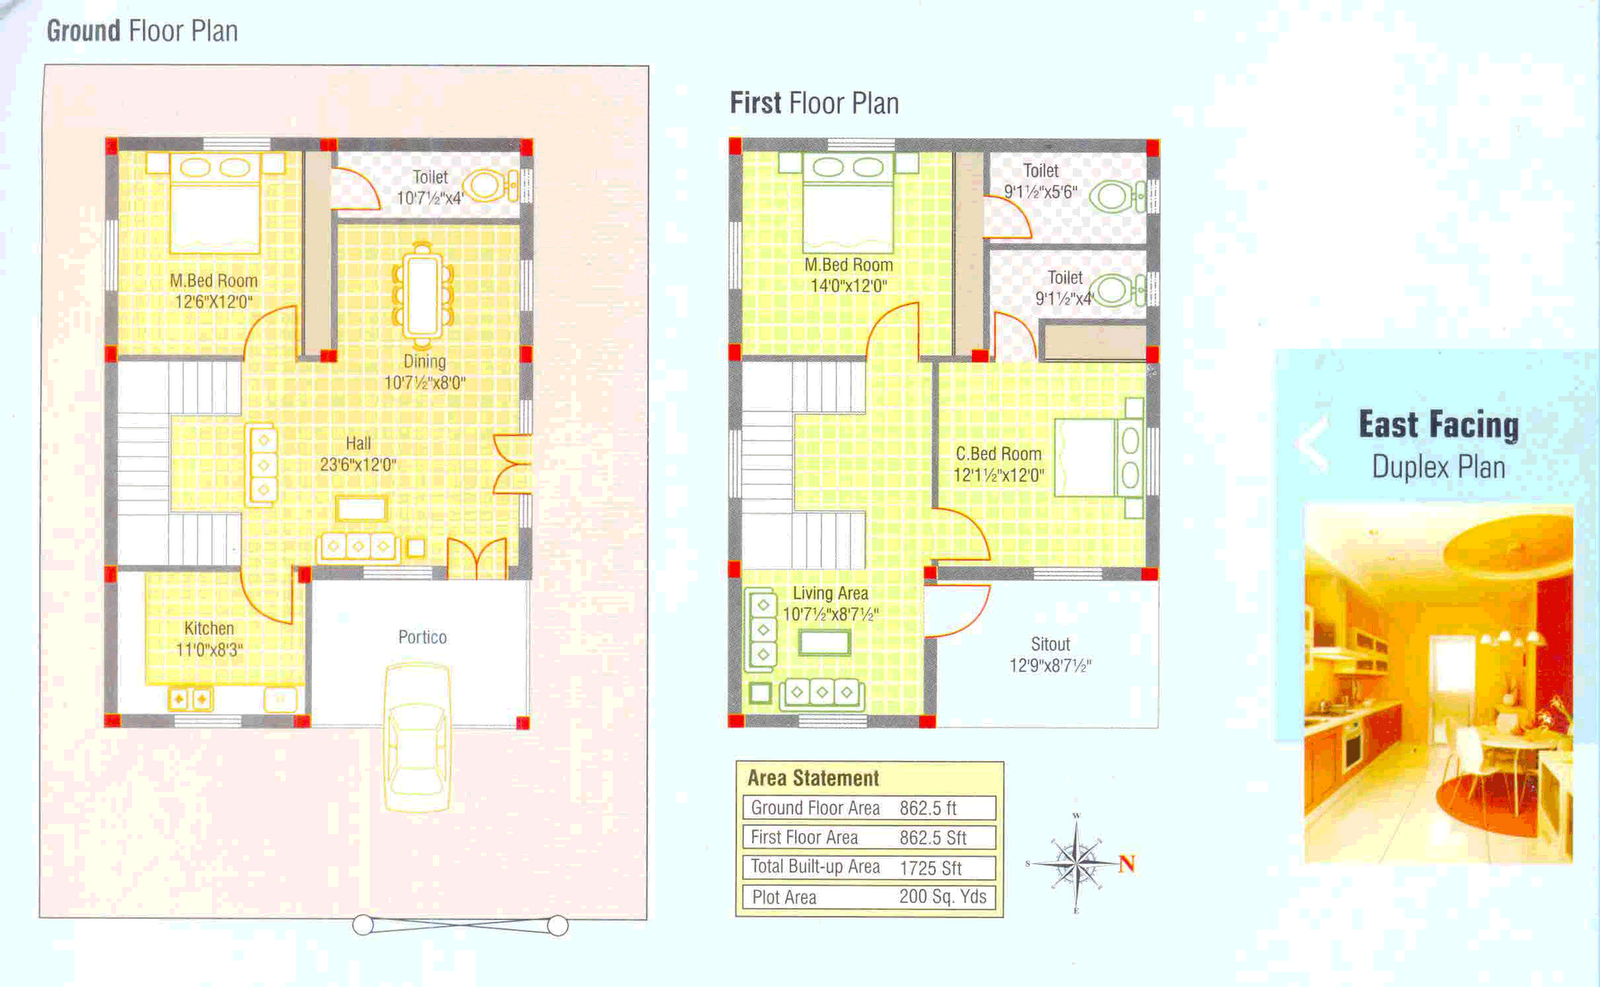 3 bedroom kerala home free plan with 1725 sq ft with lot - Kerala house designs and floor plans 2013 ...